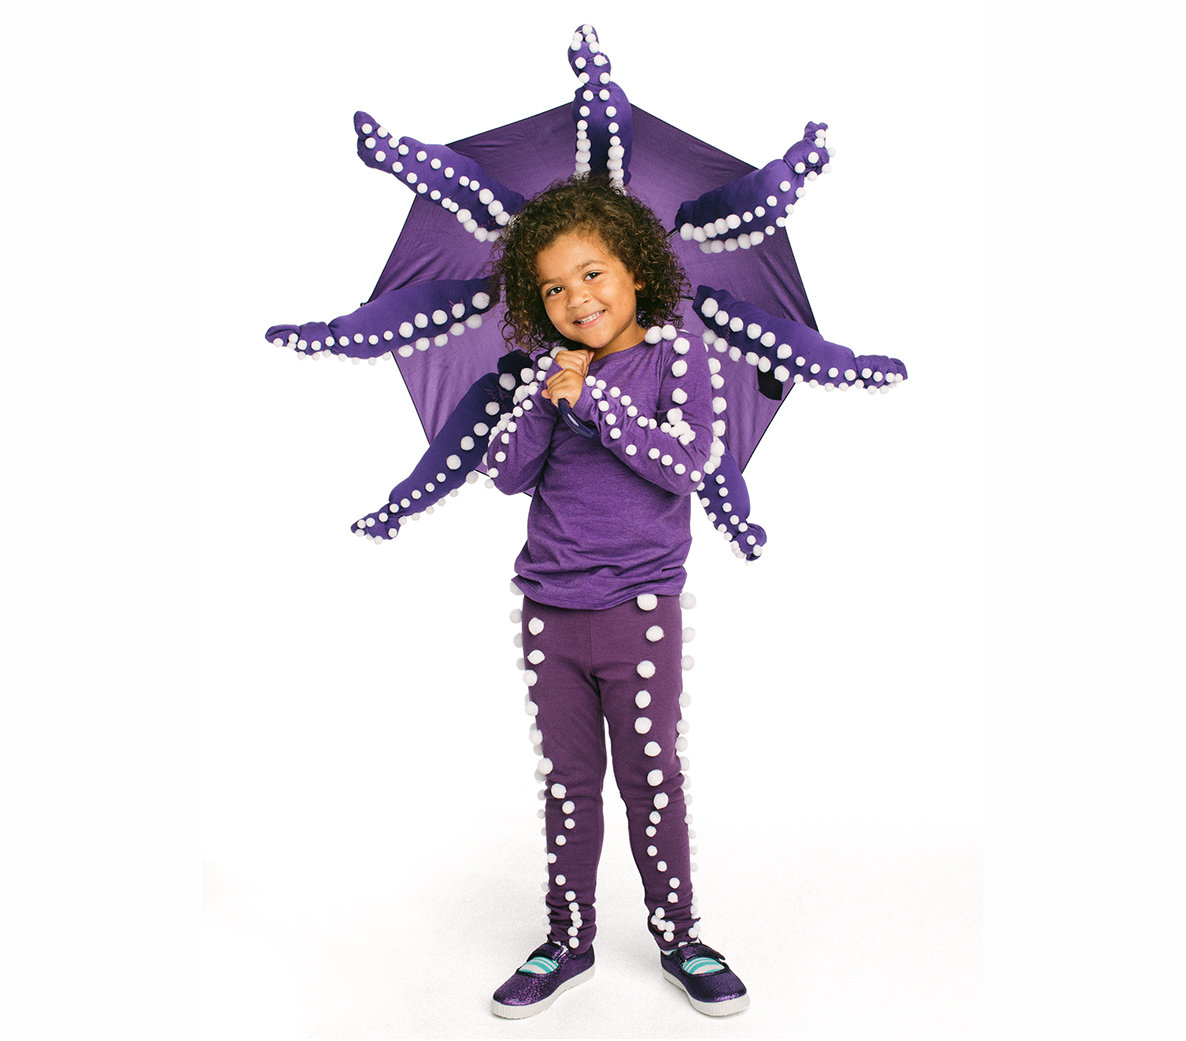 The costume octopus cool halloween costumes you can for Halloween decorations u can make